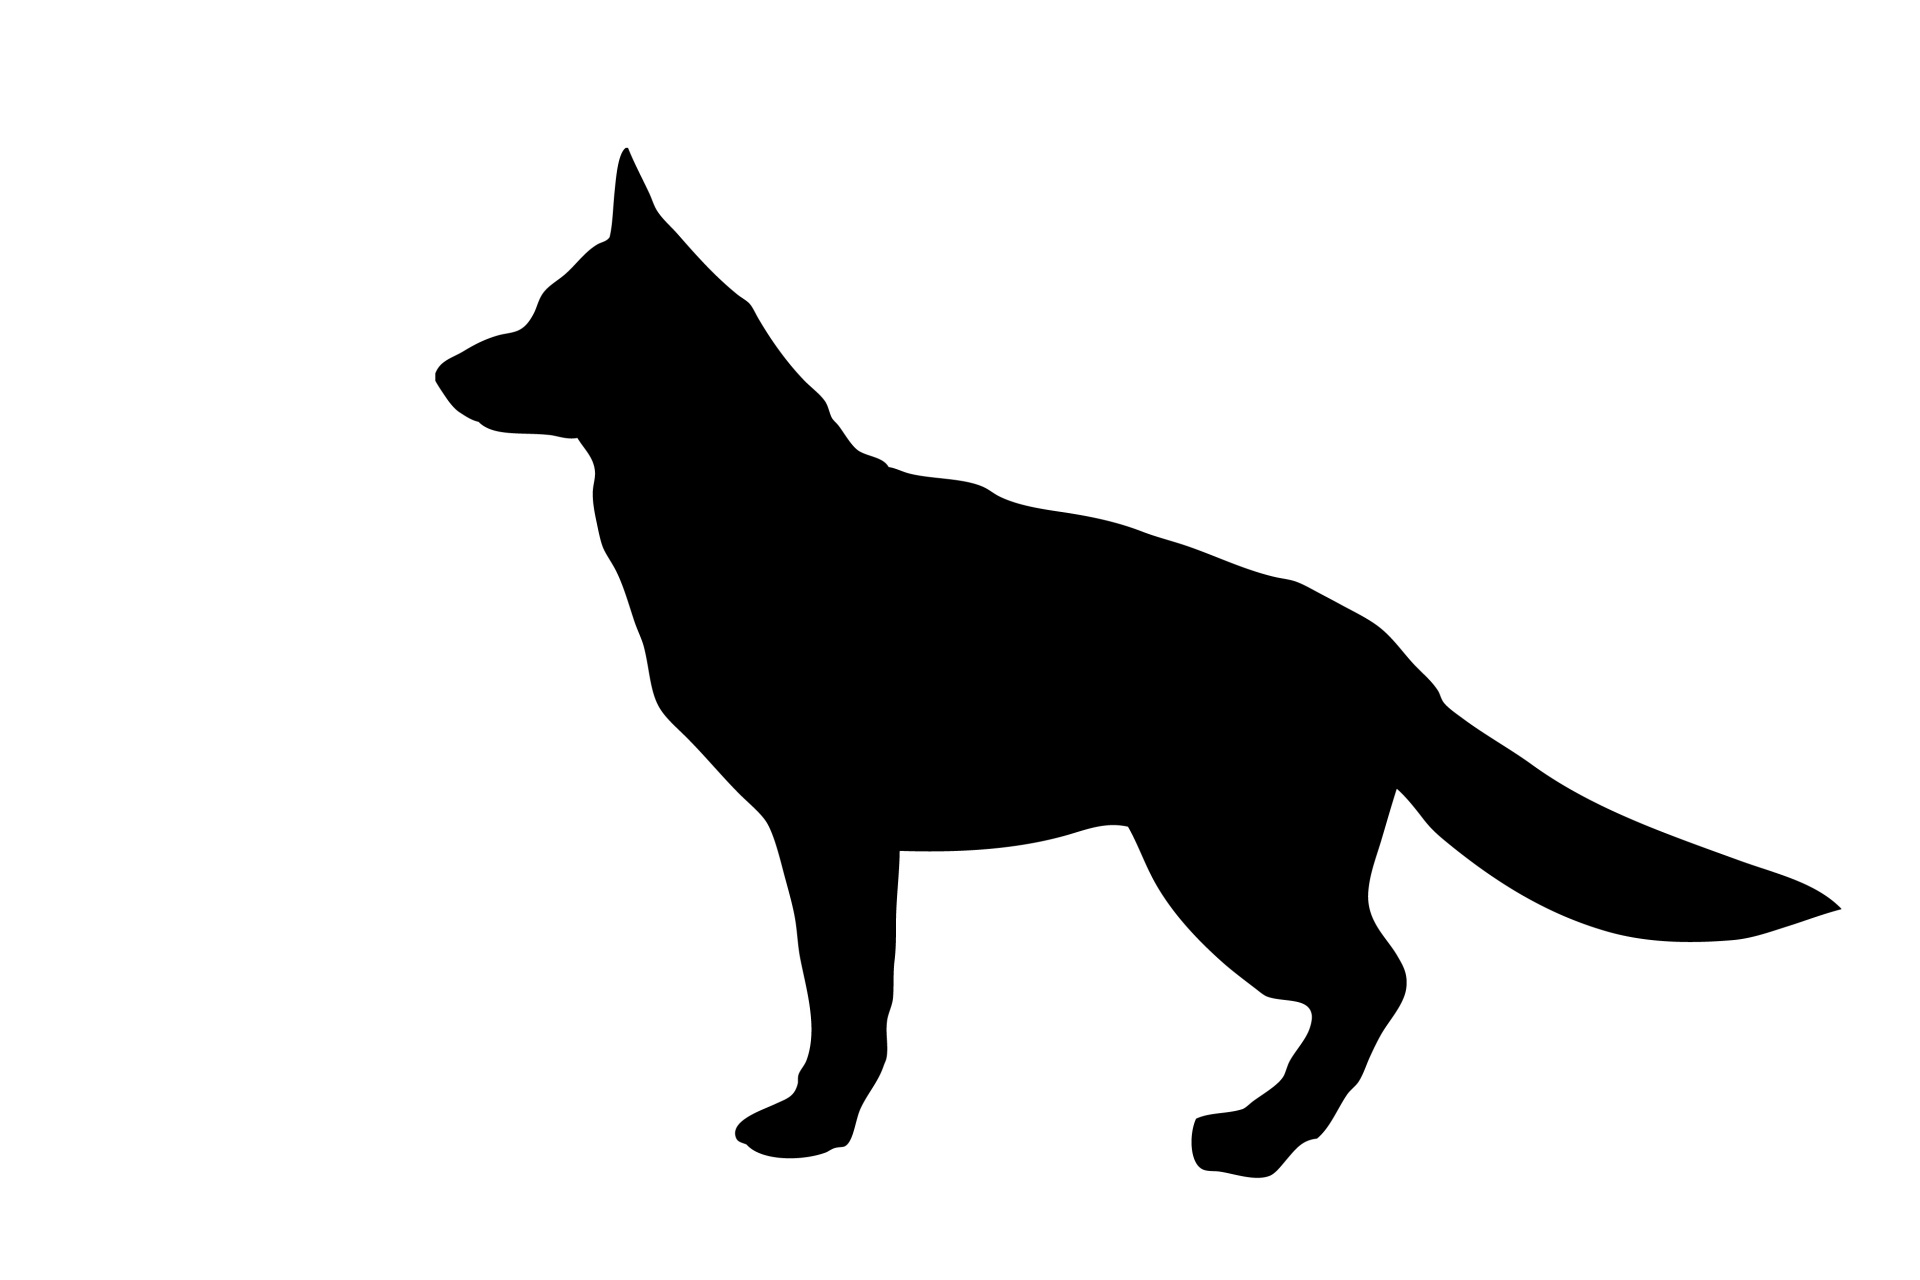 State German Shepherd Dog Silhouette Free Stock Photo Sitting German Shepherd Silhouette At Free Black German Shepherd Sitting German Shepherd Sitting Images bark post German Shepherd Sitting